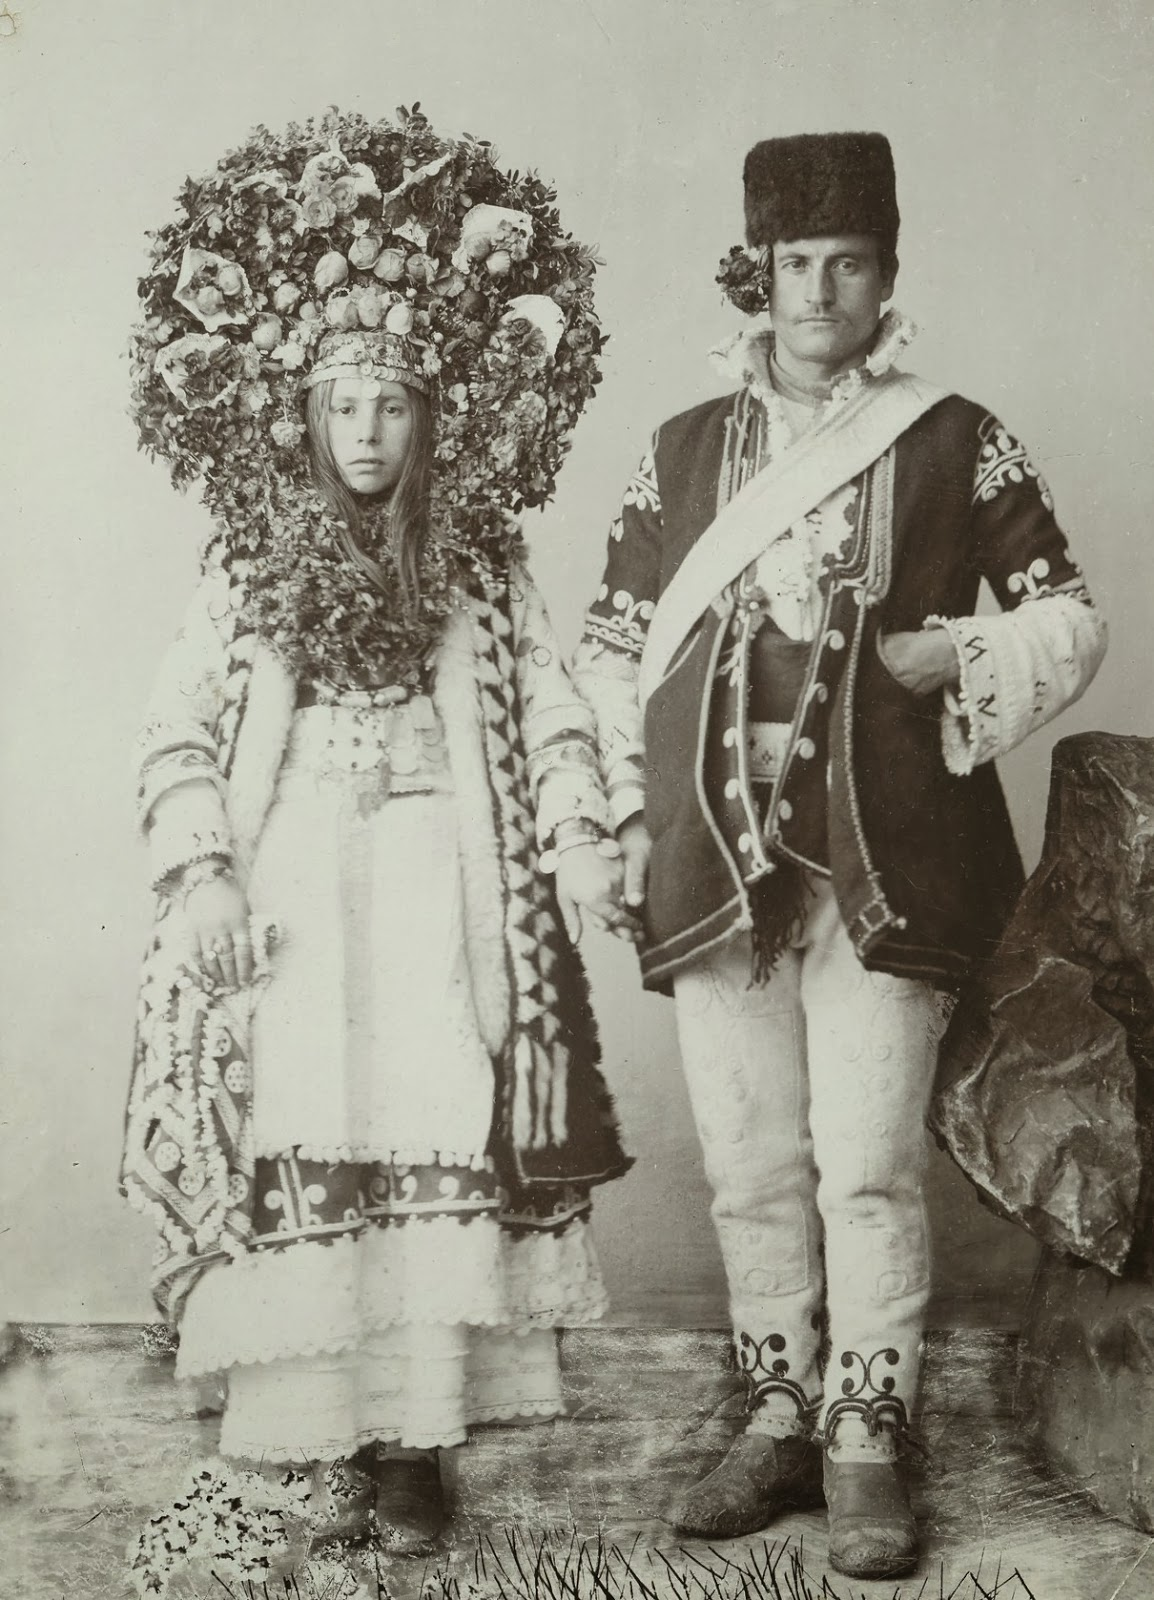 Local fashion: Traditional wedding costume and headdress of Europe